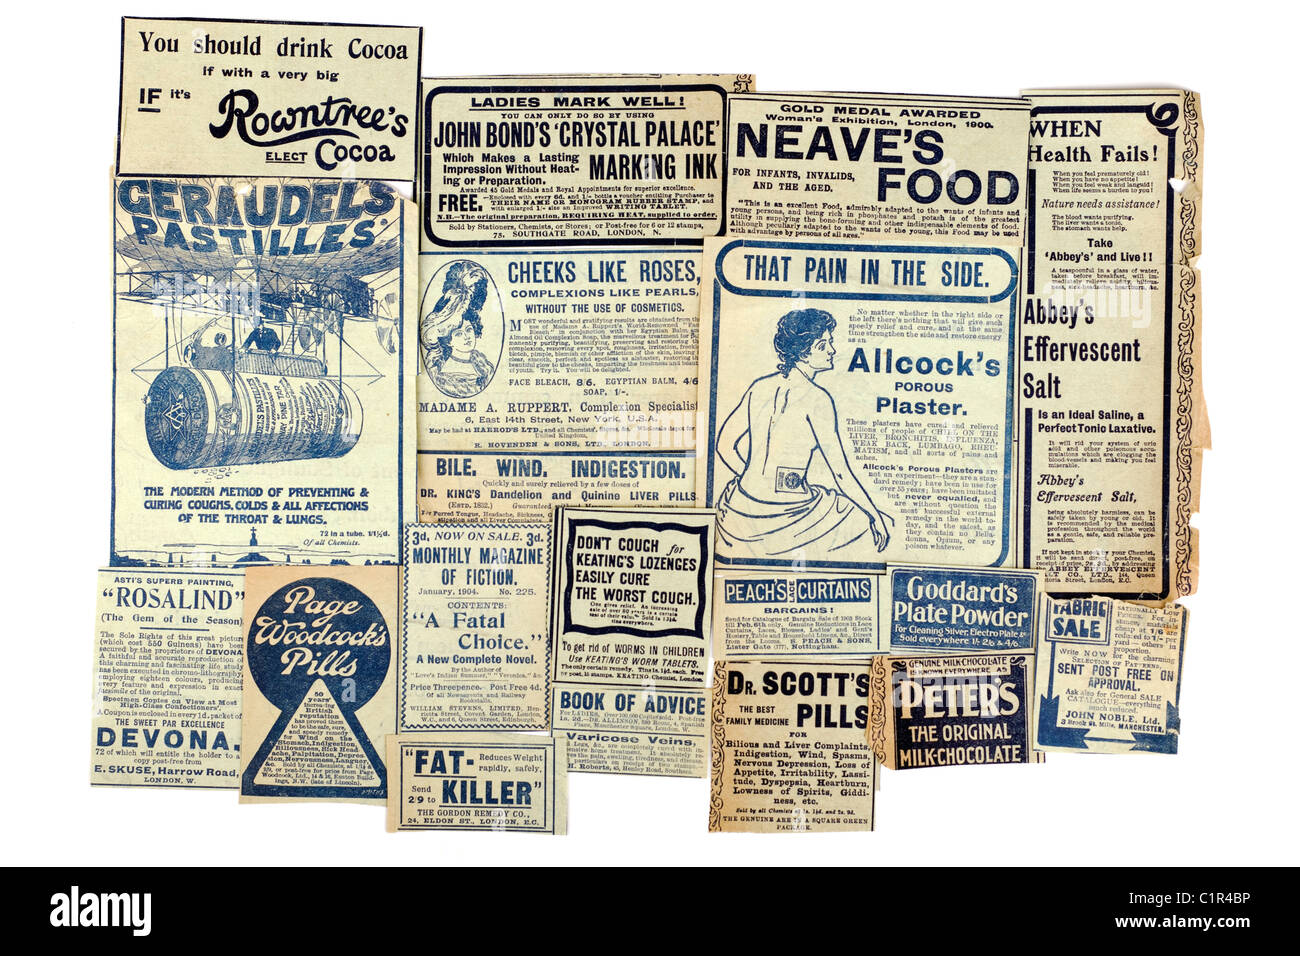 Selection of vintage drink health and remedy advertisements 'newspaper clippings' of 19 different products. - Stock Image